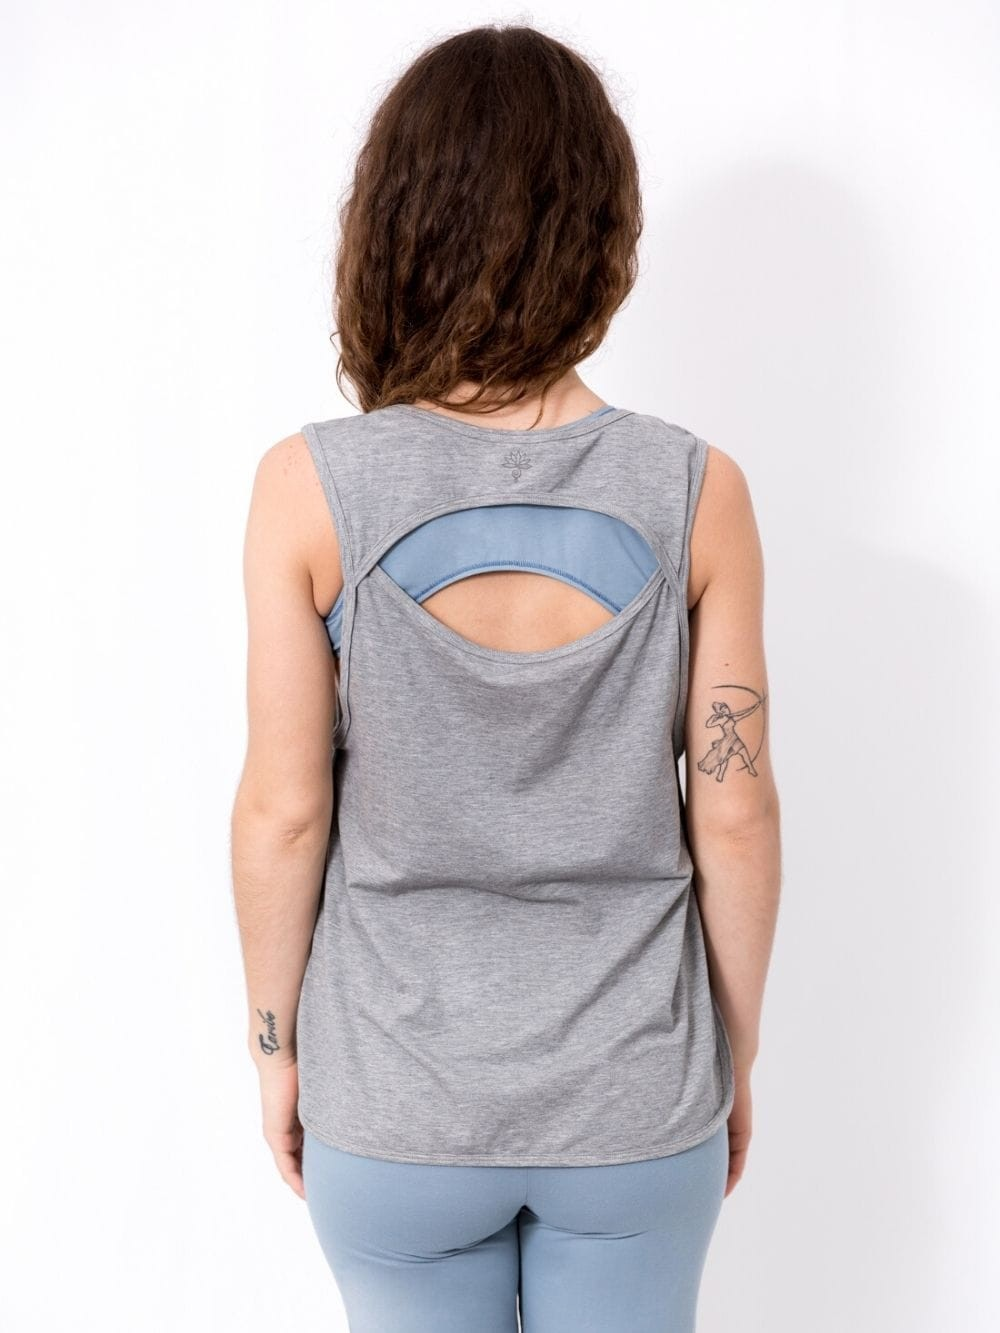 Camiseta deporte de materiales biodegradables-Vinyasa